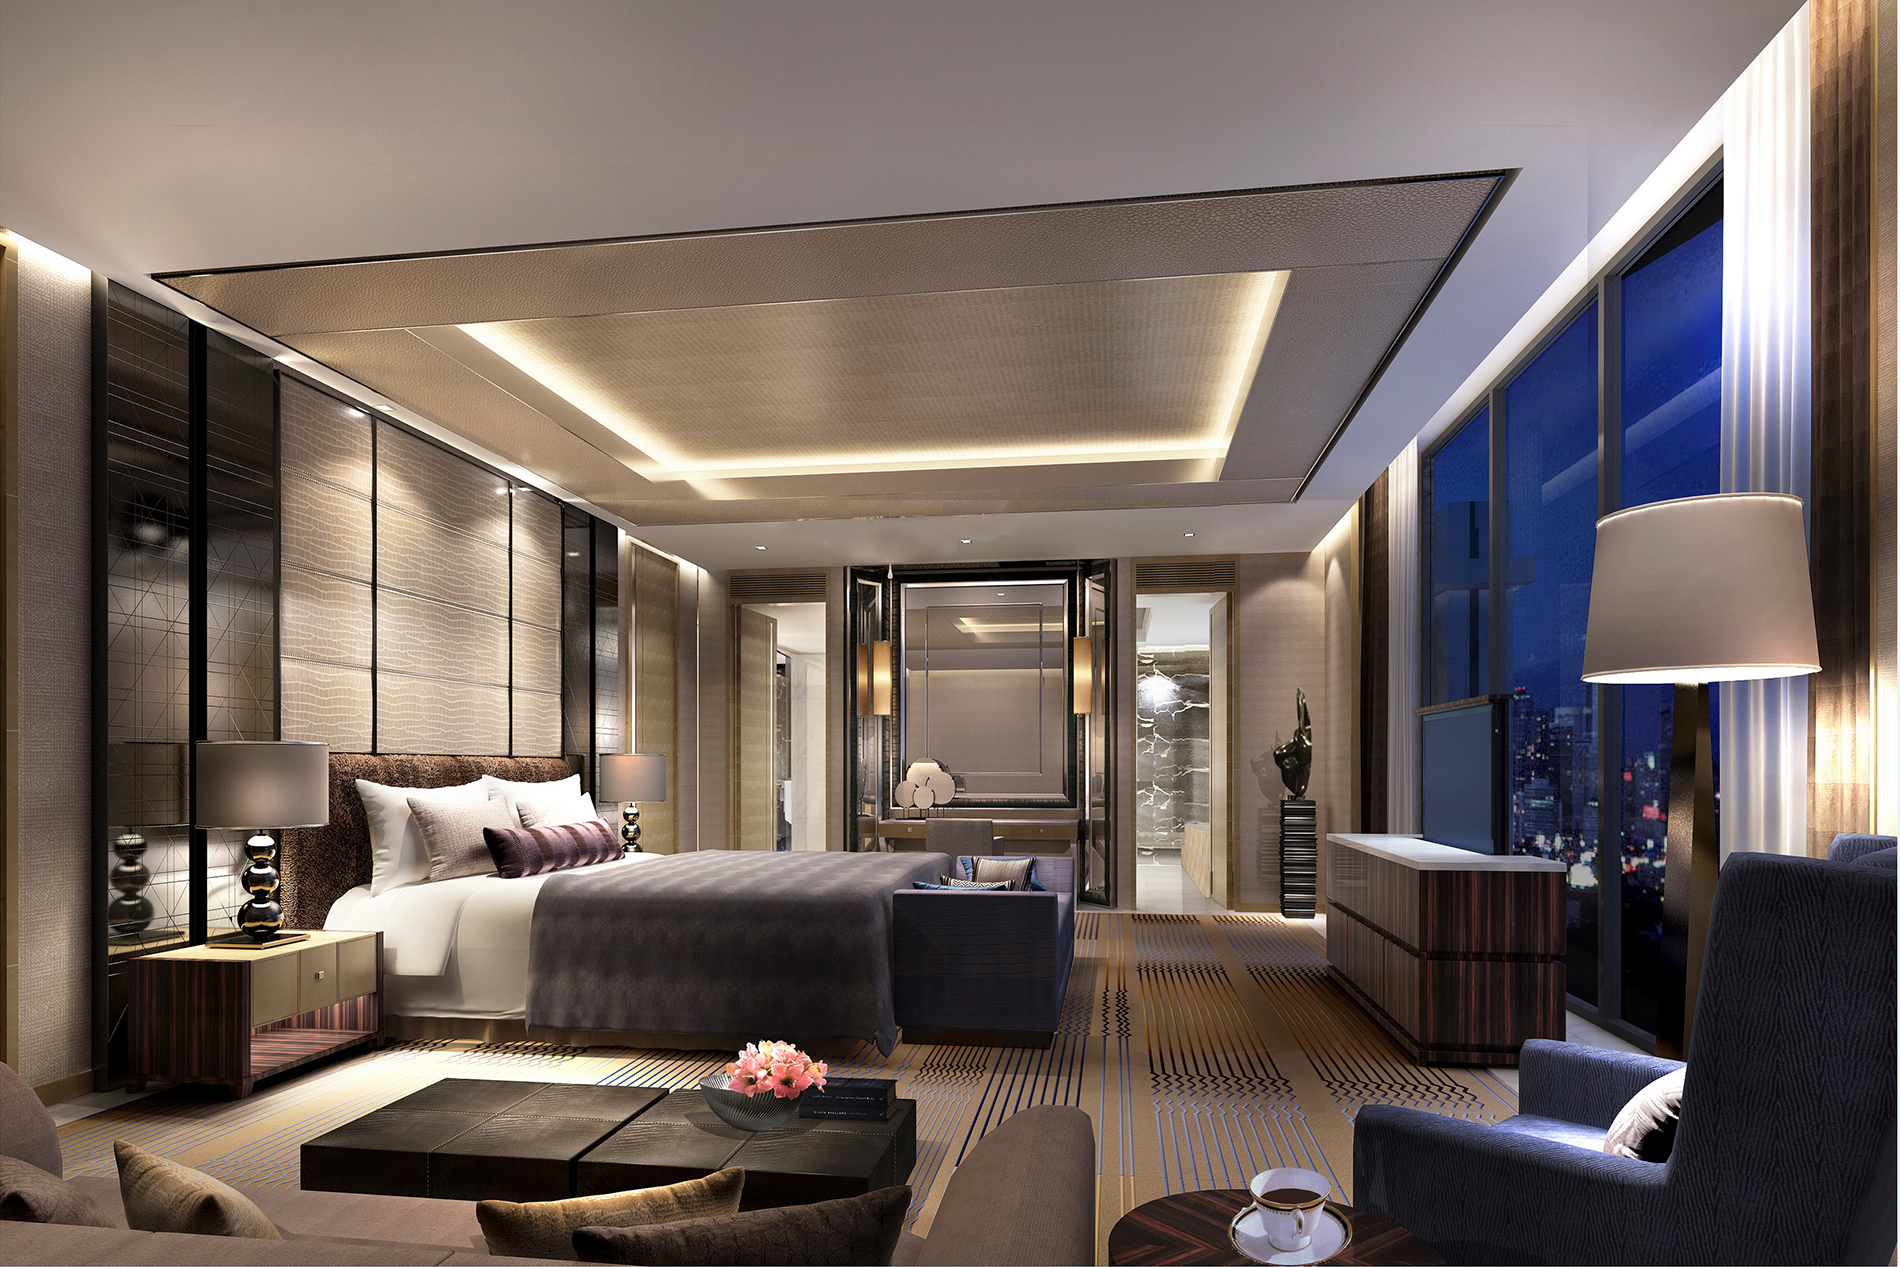 New langham place hotel opens in xiamen china for Modern hotels uk